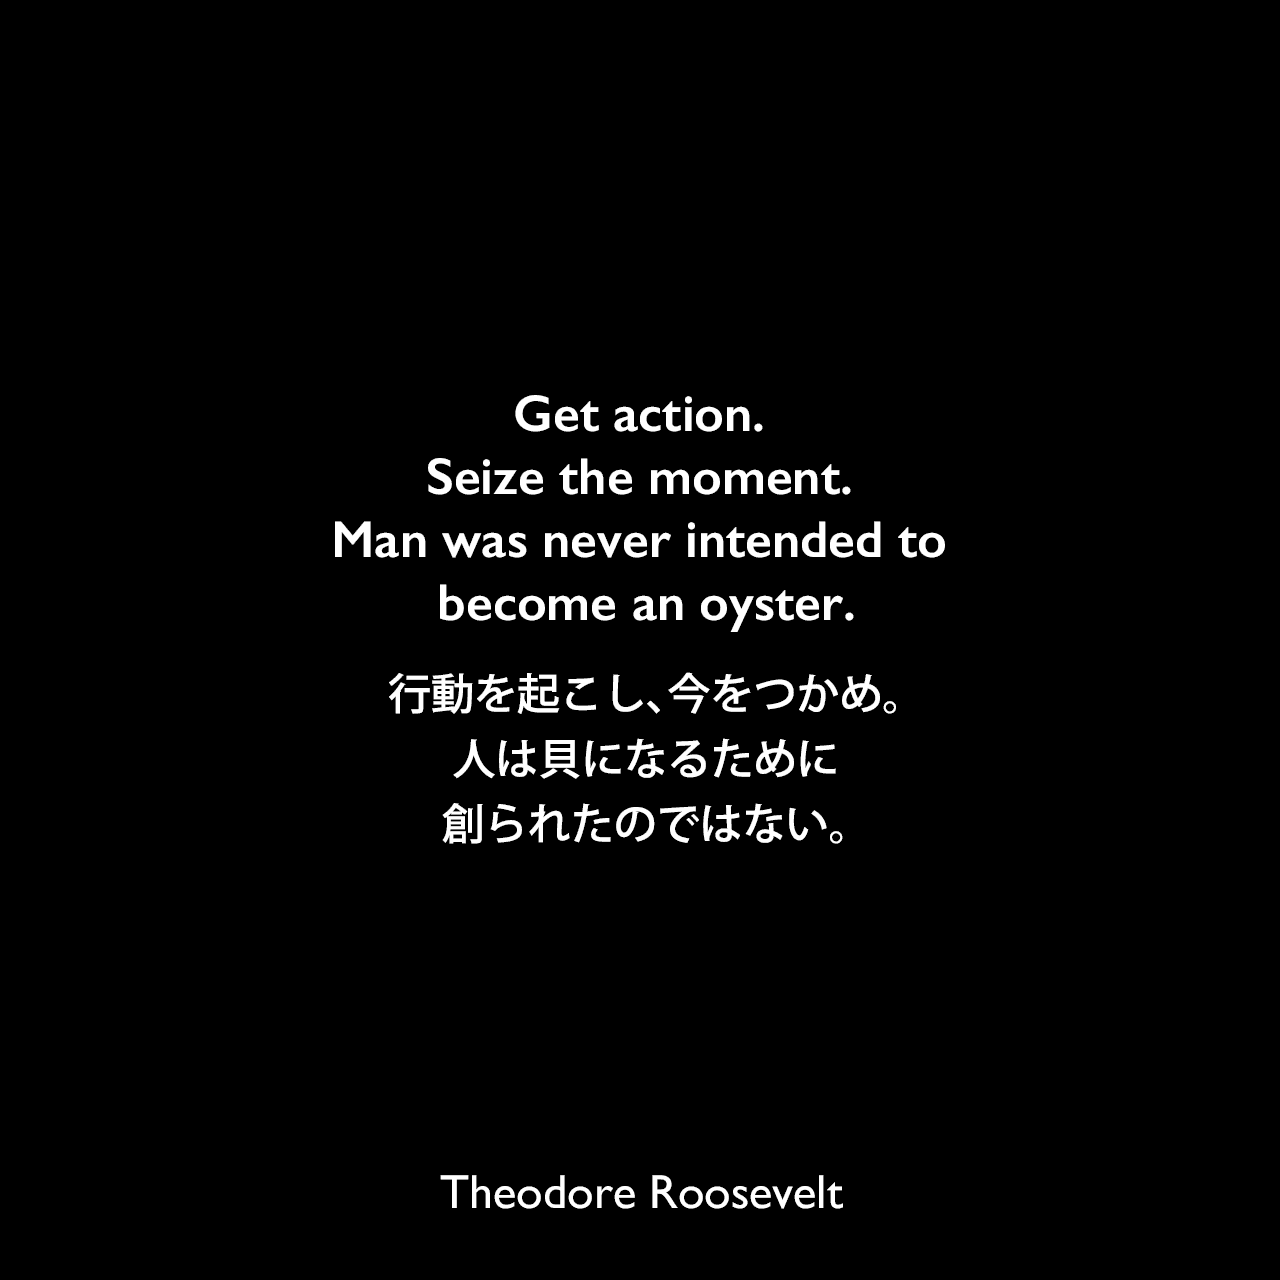 Get action. Seize the moment. Man was never intended to become an oyster.行動を起こし、今をつかめ。人は貝になるために創られたのではない。Theodore Roosevelt